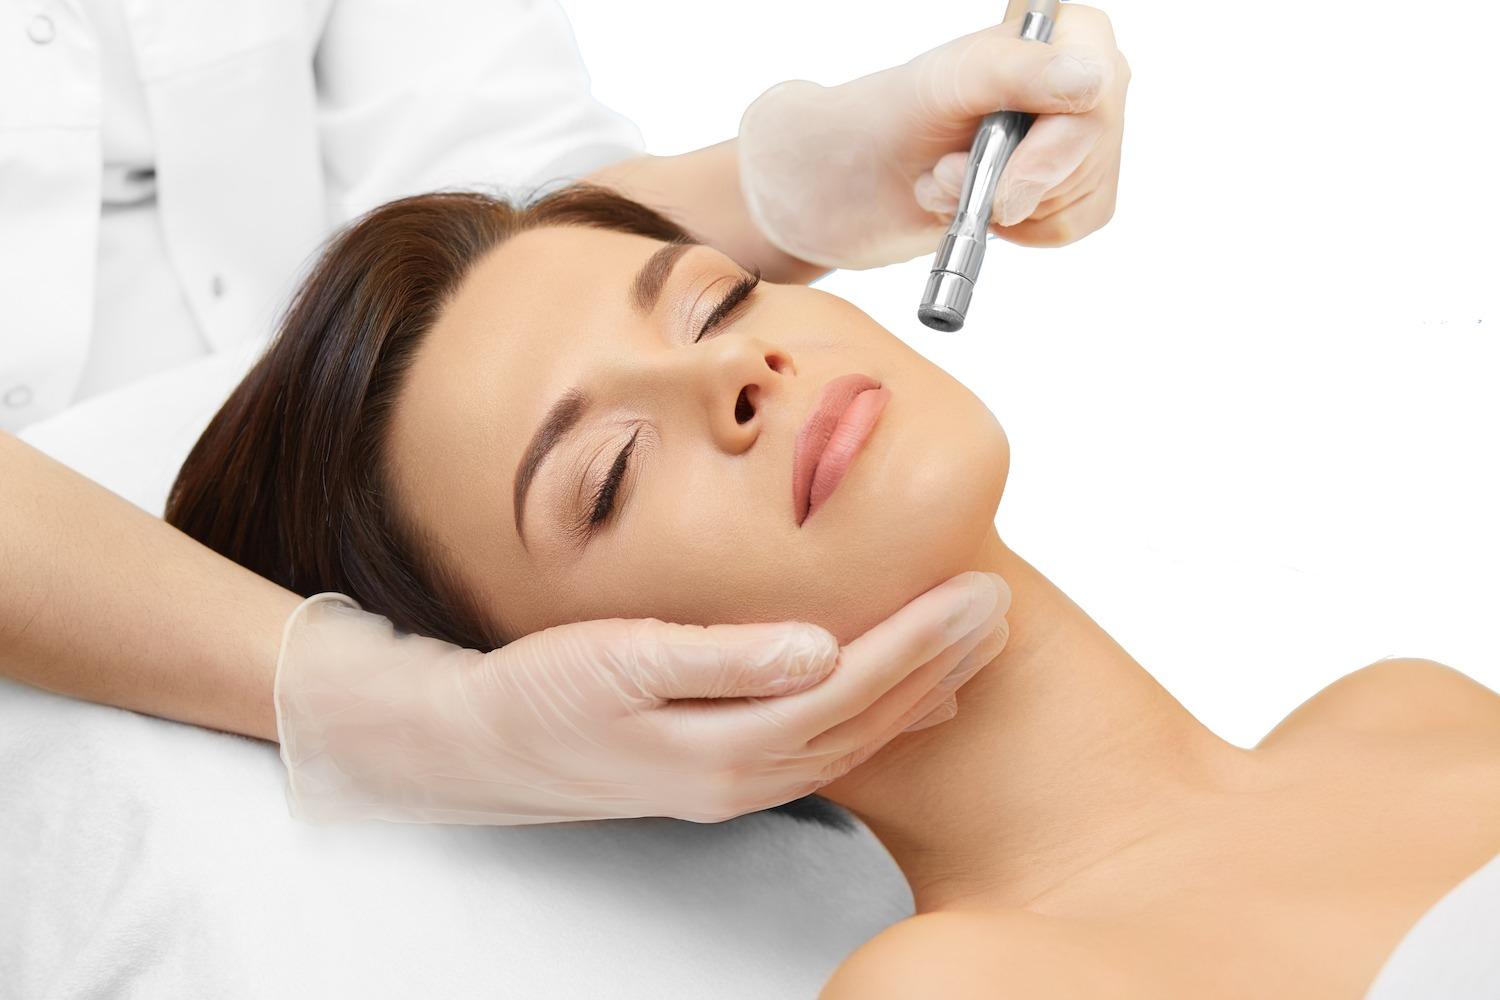 young woman rejuvenating skin with microdermabrasion